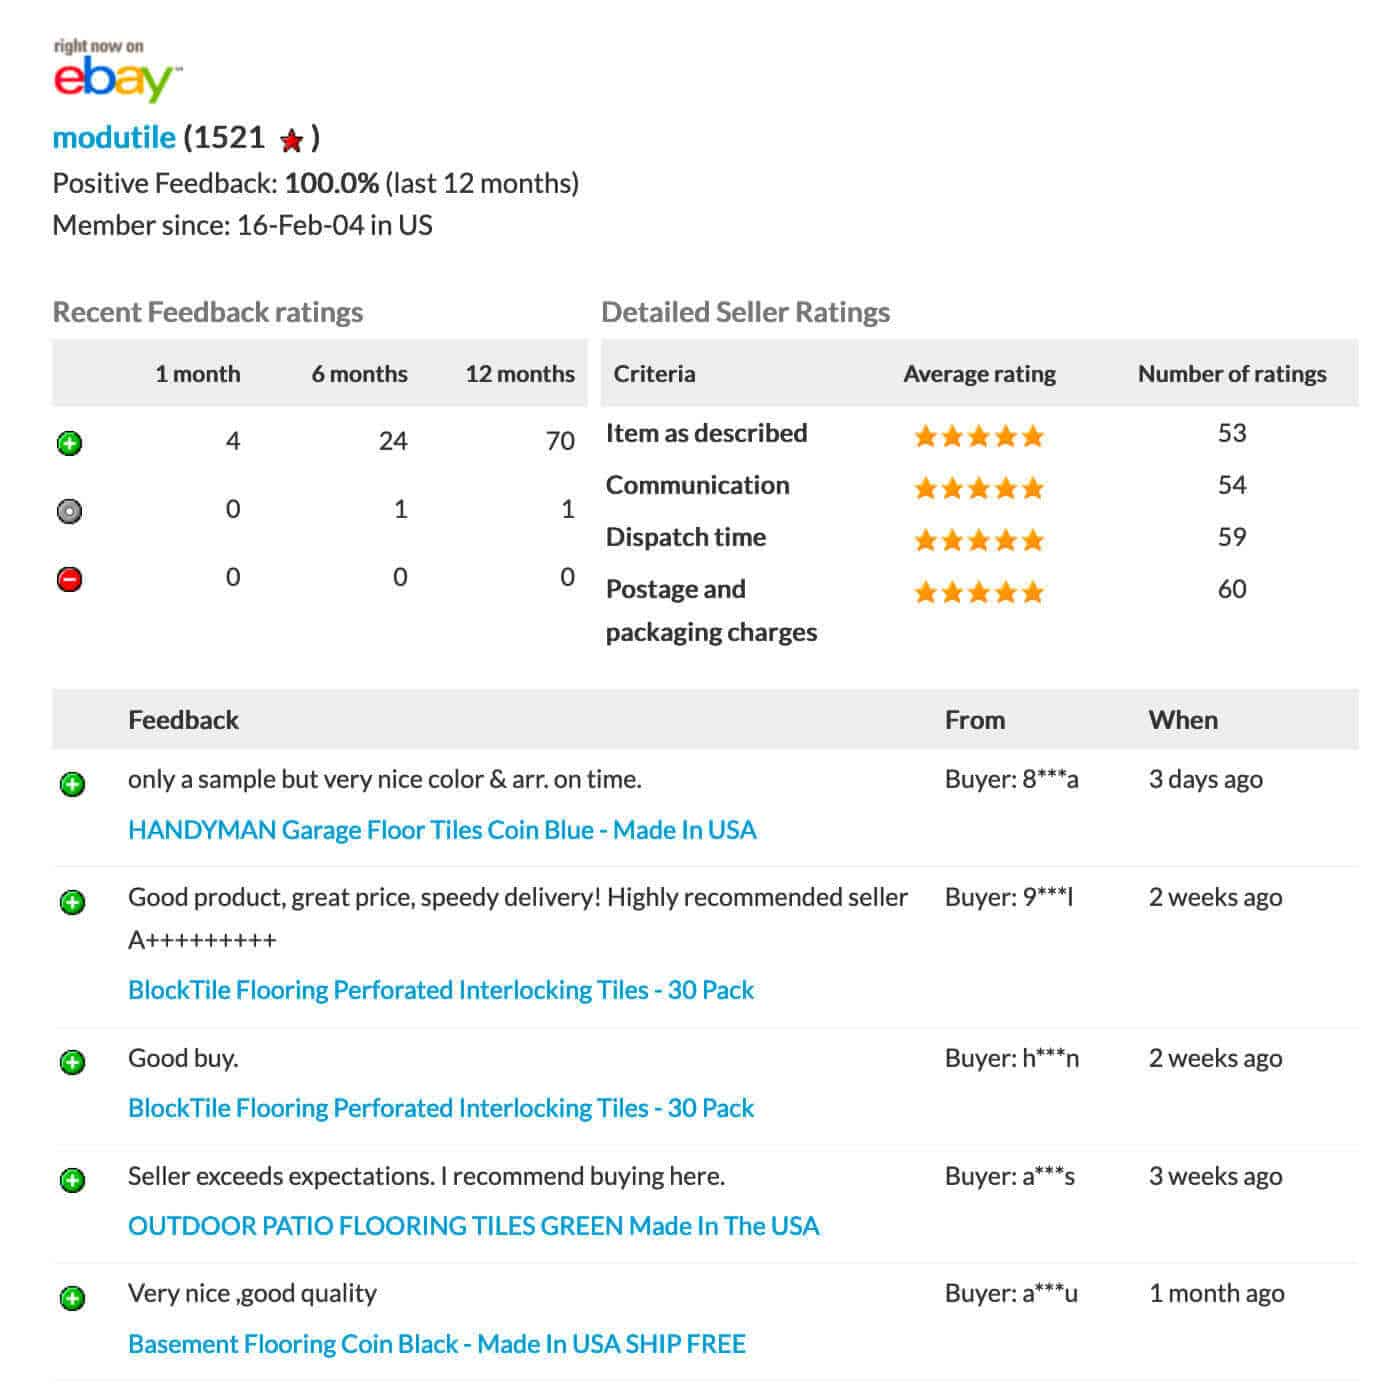 eBay ModuTile Reviews